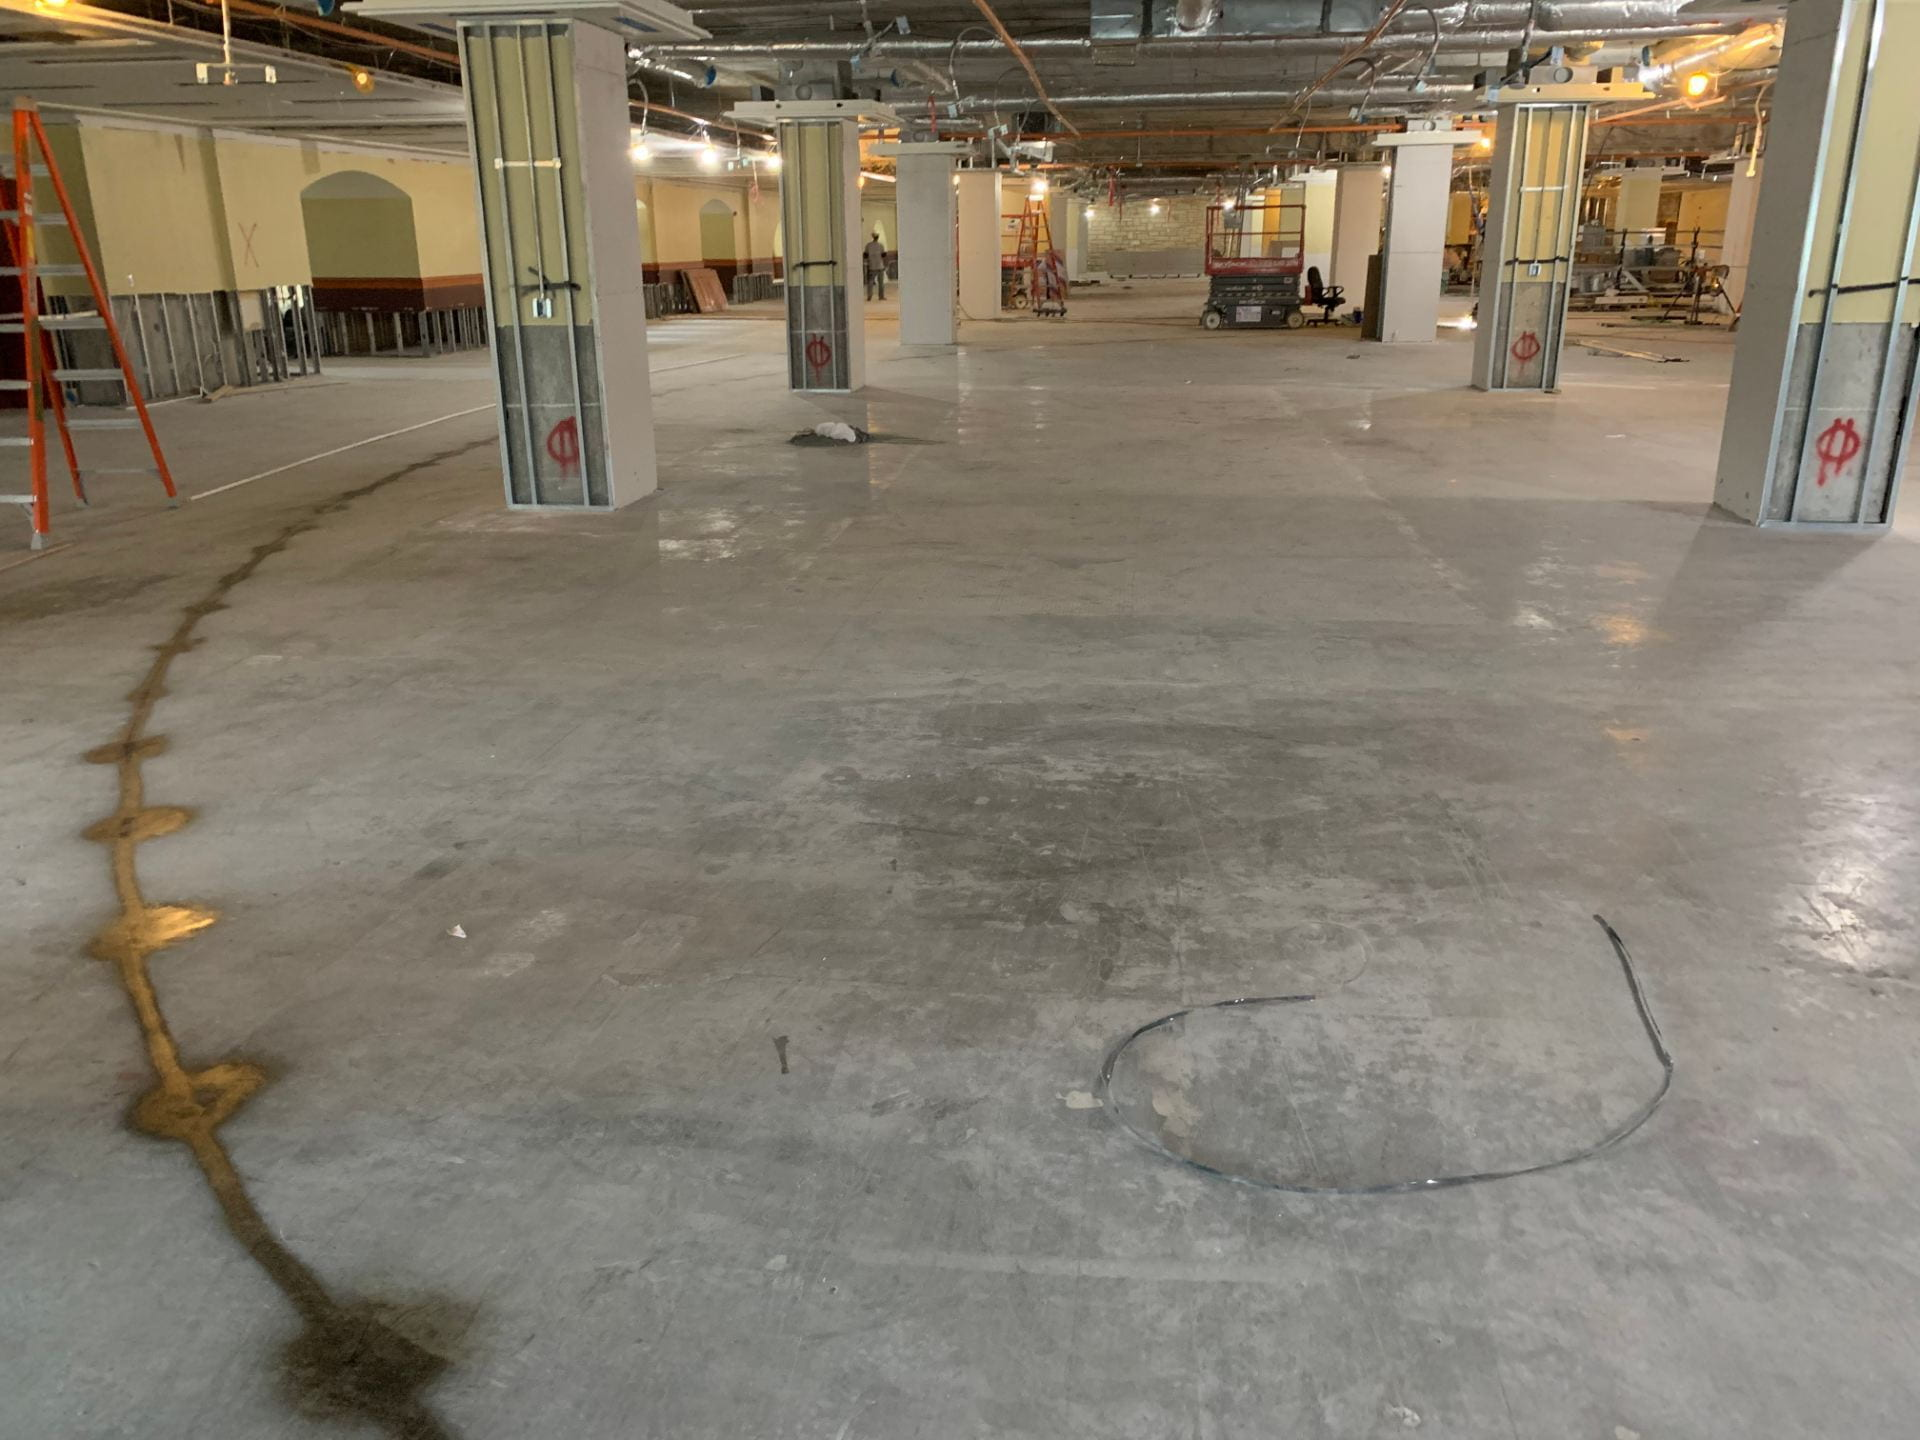 A line on the concrete floor depicts the location for a new classroom.